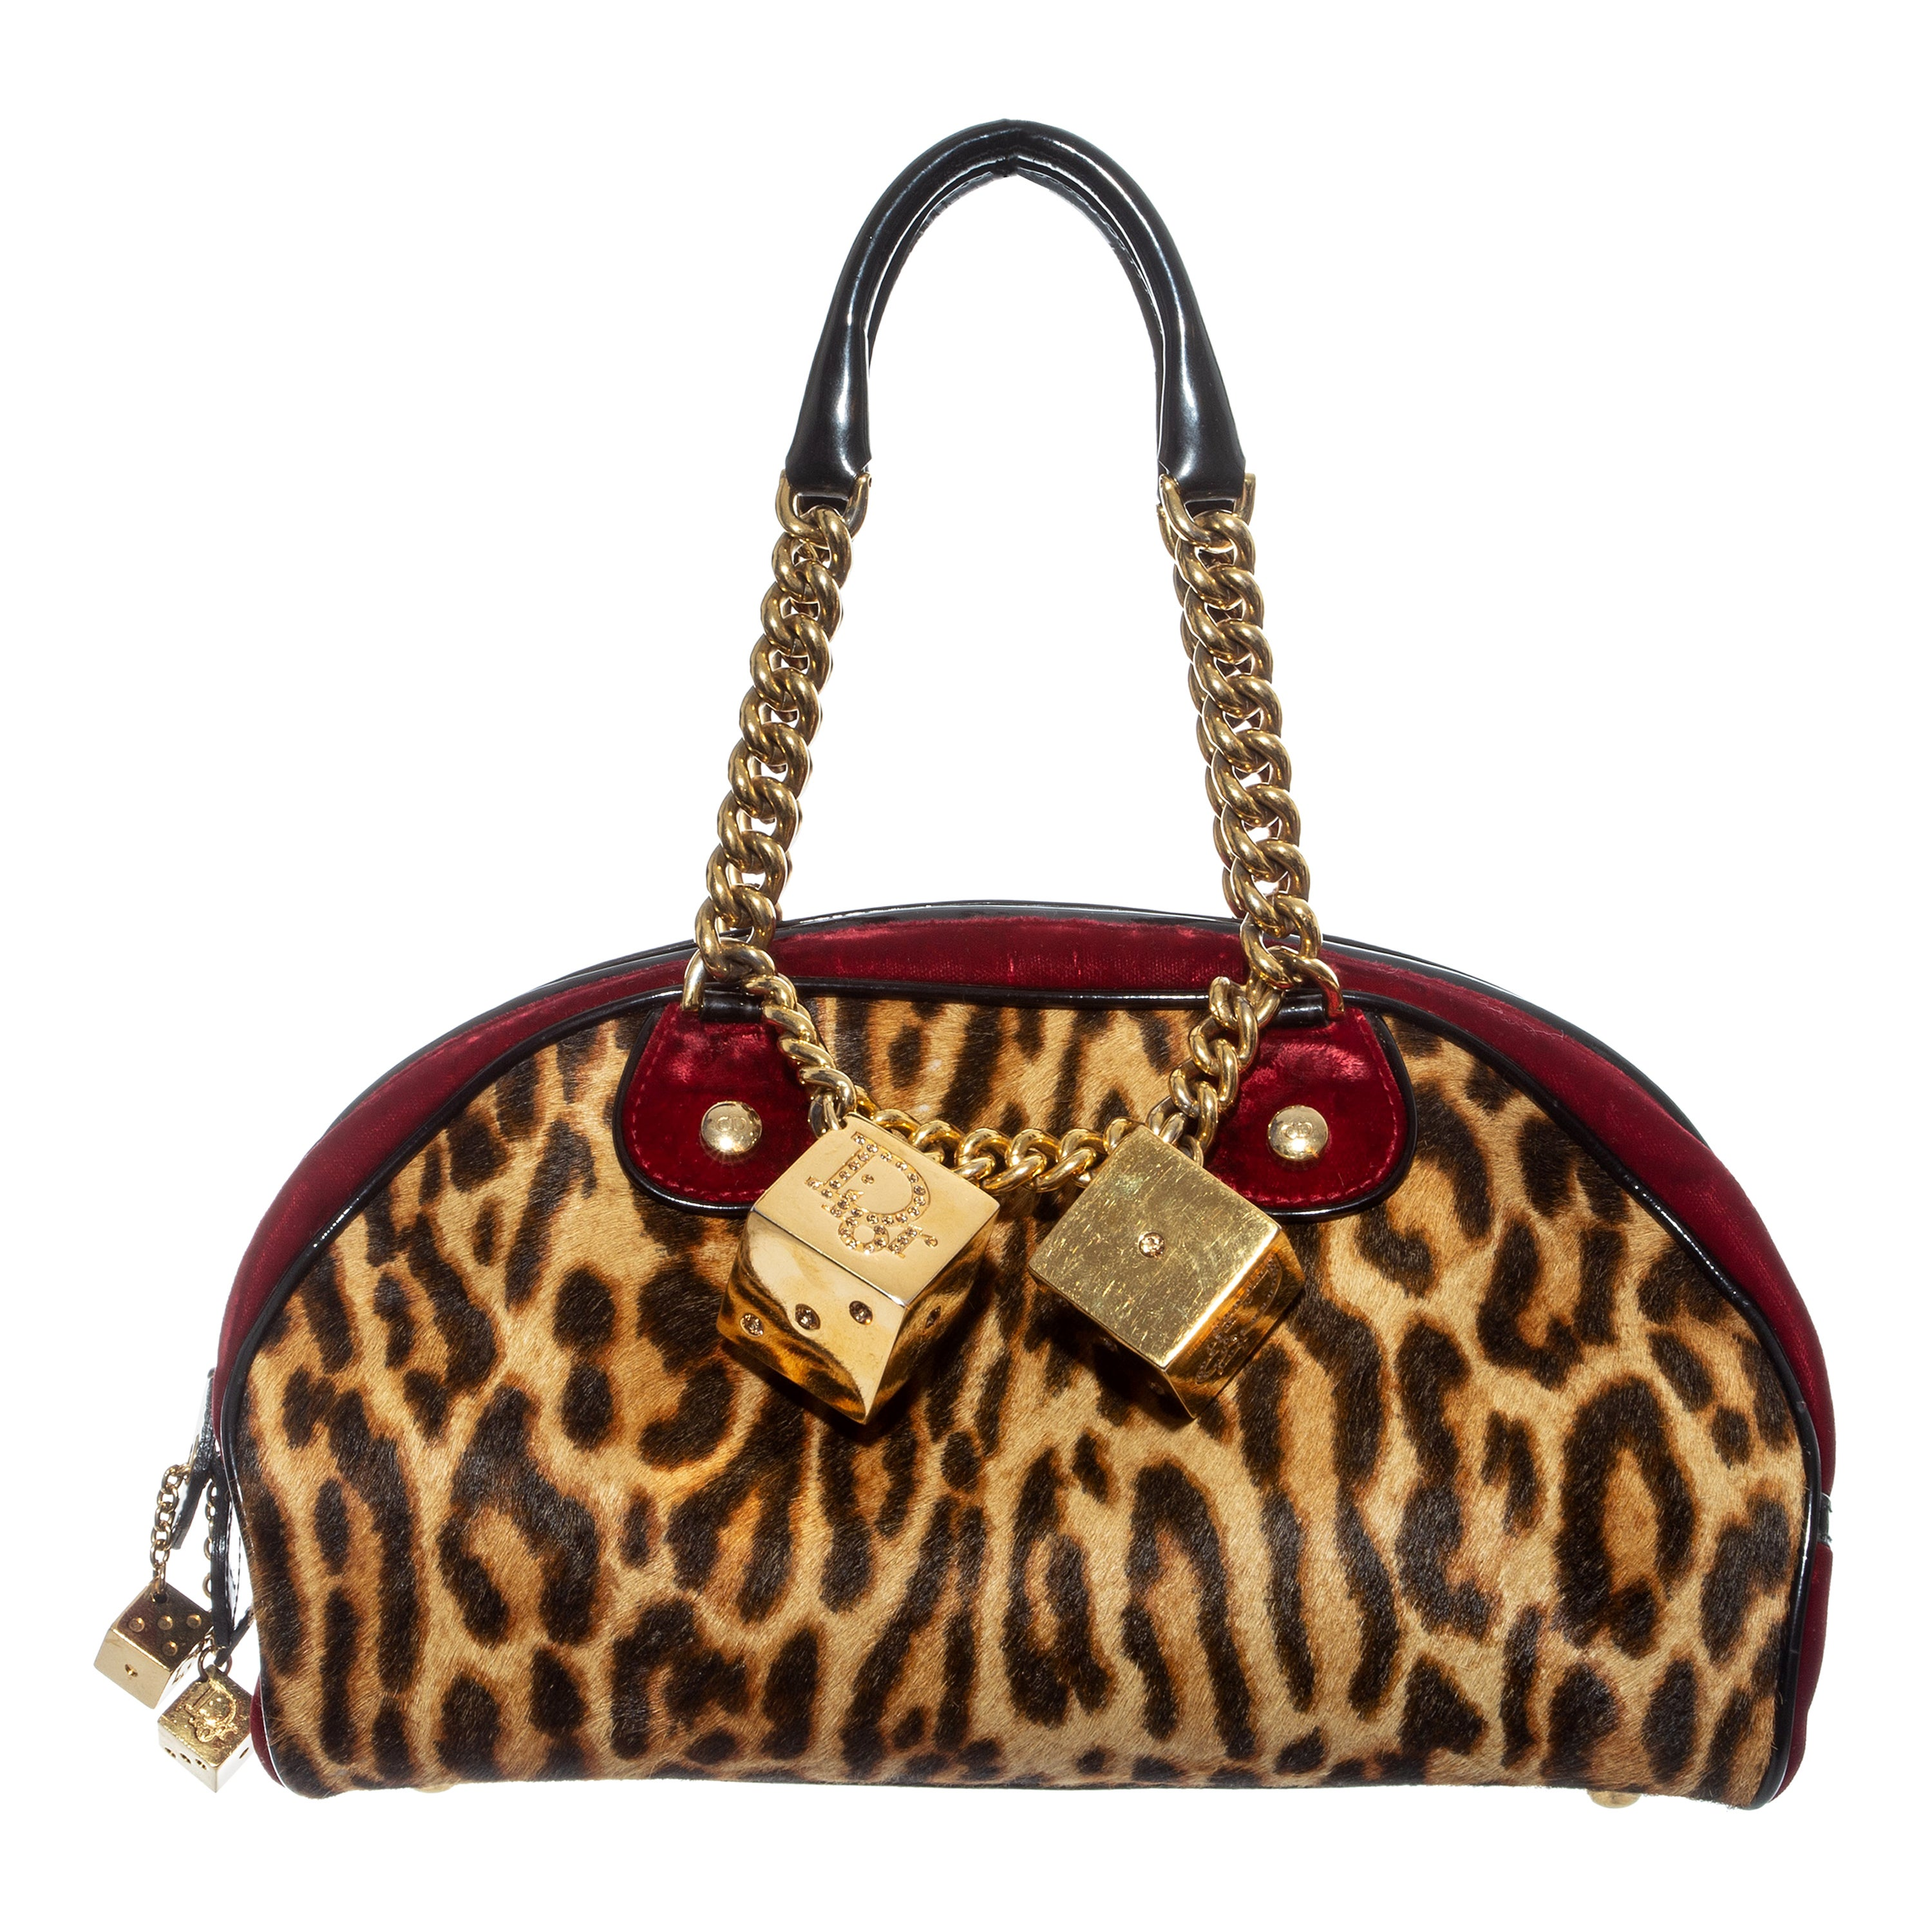 Christian Dior by John Galliano leopard pony hair and red velvet bag, fw 2004